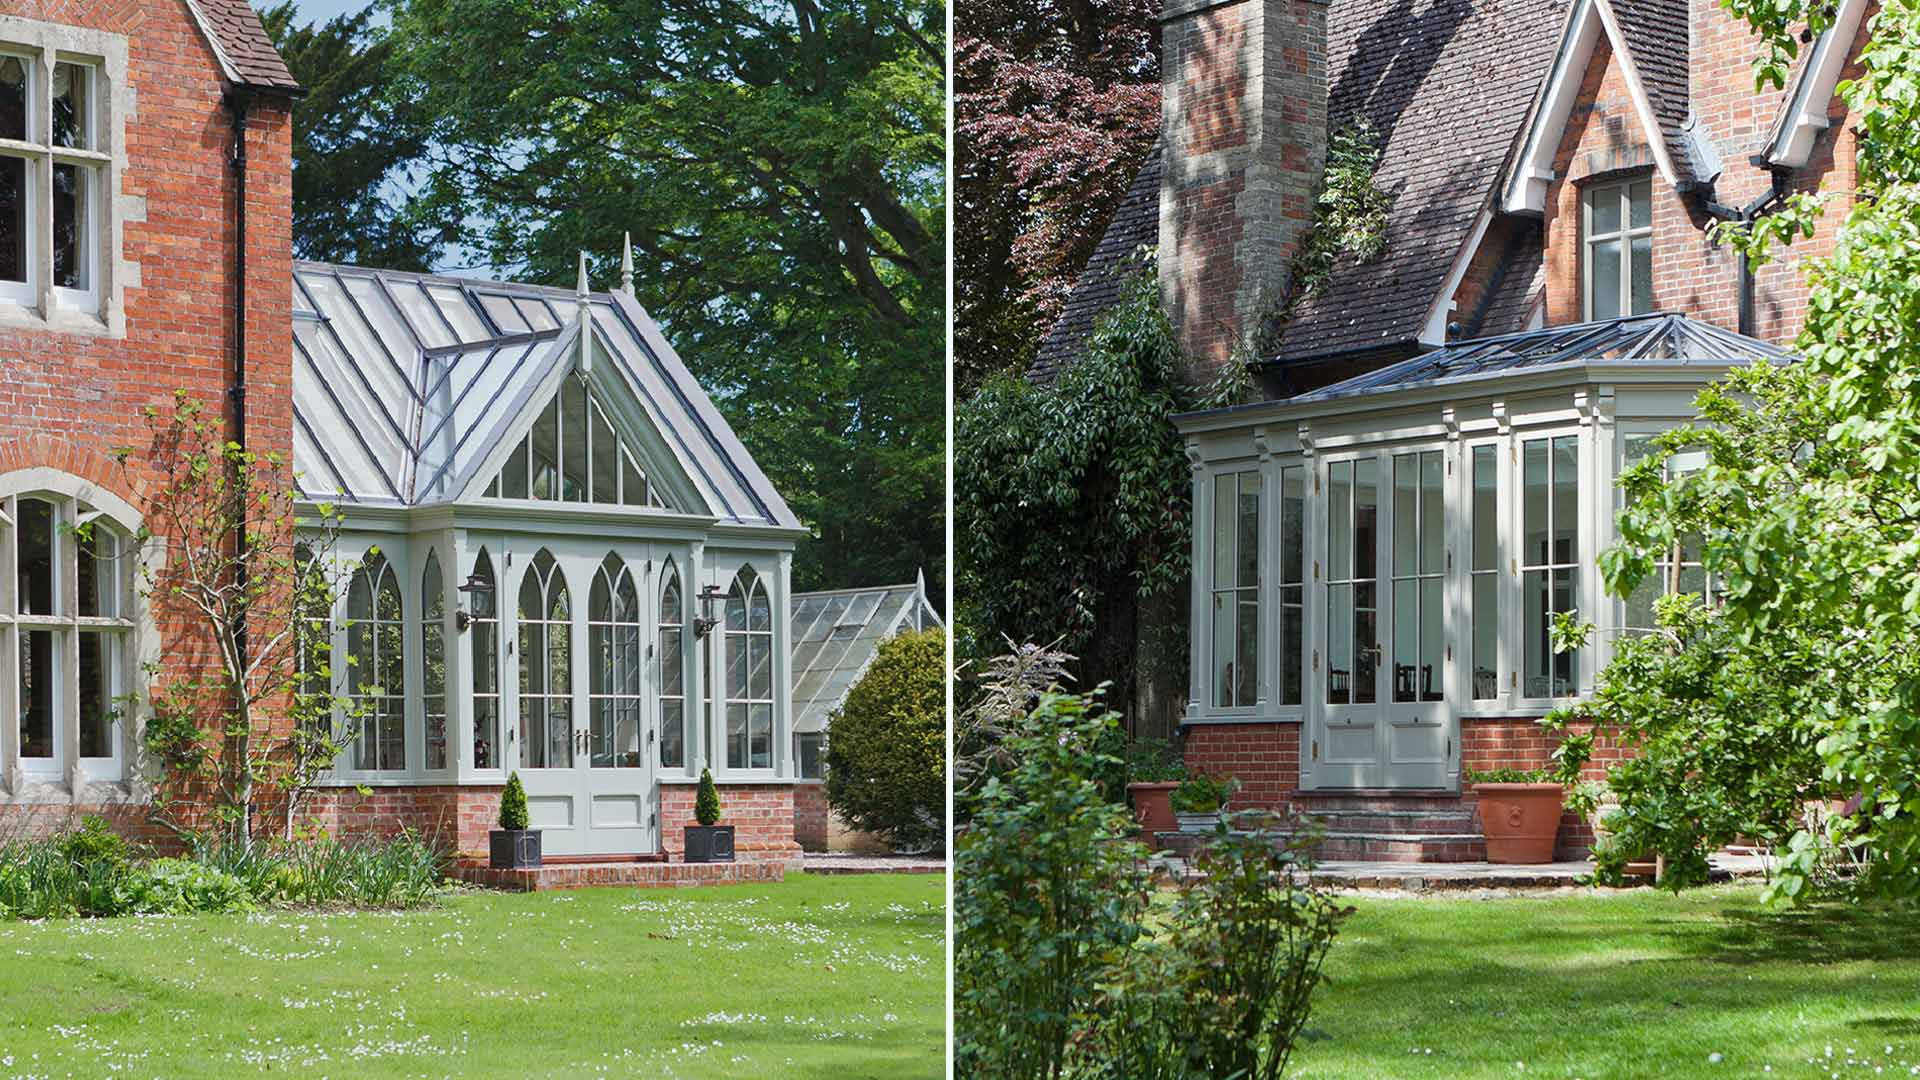 Inspirational smaller bespoke conservatory projects